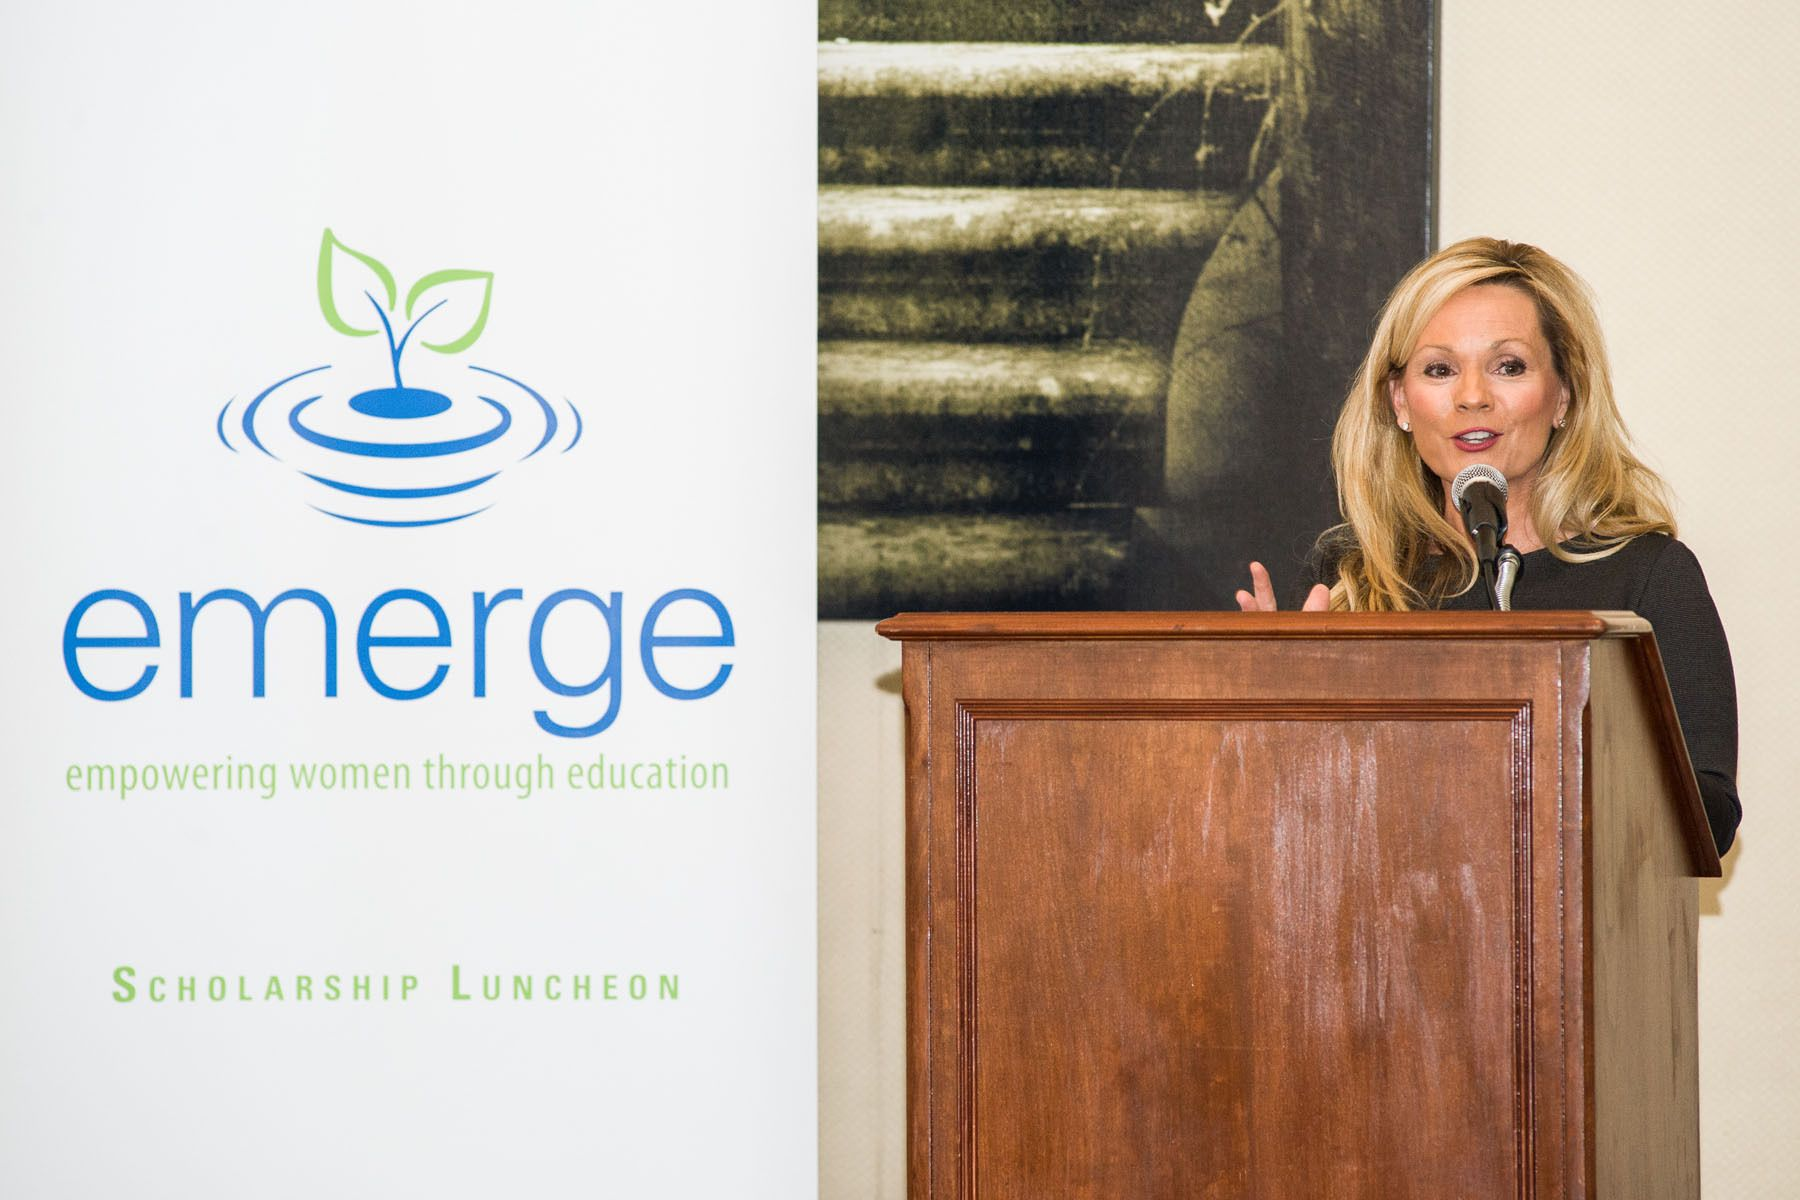 Emerge Scholarship Luncheon